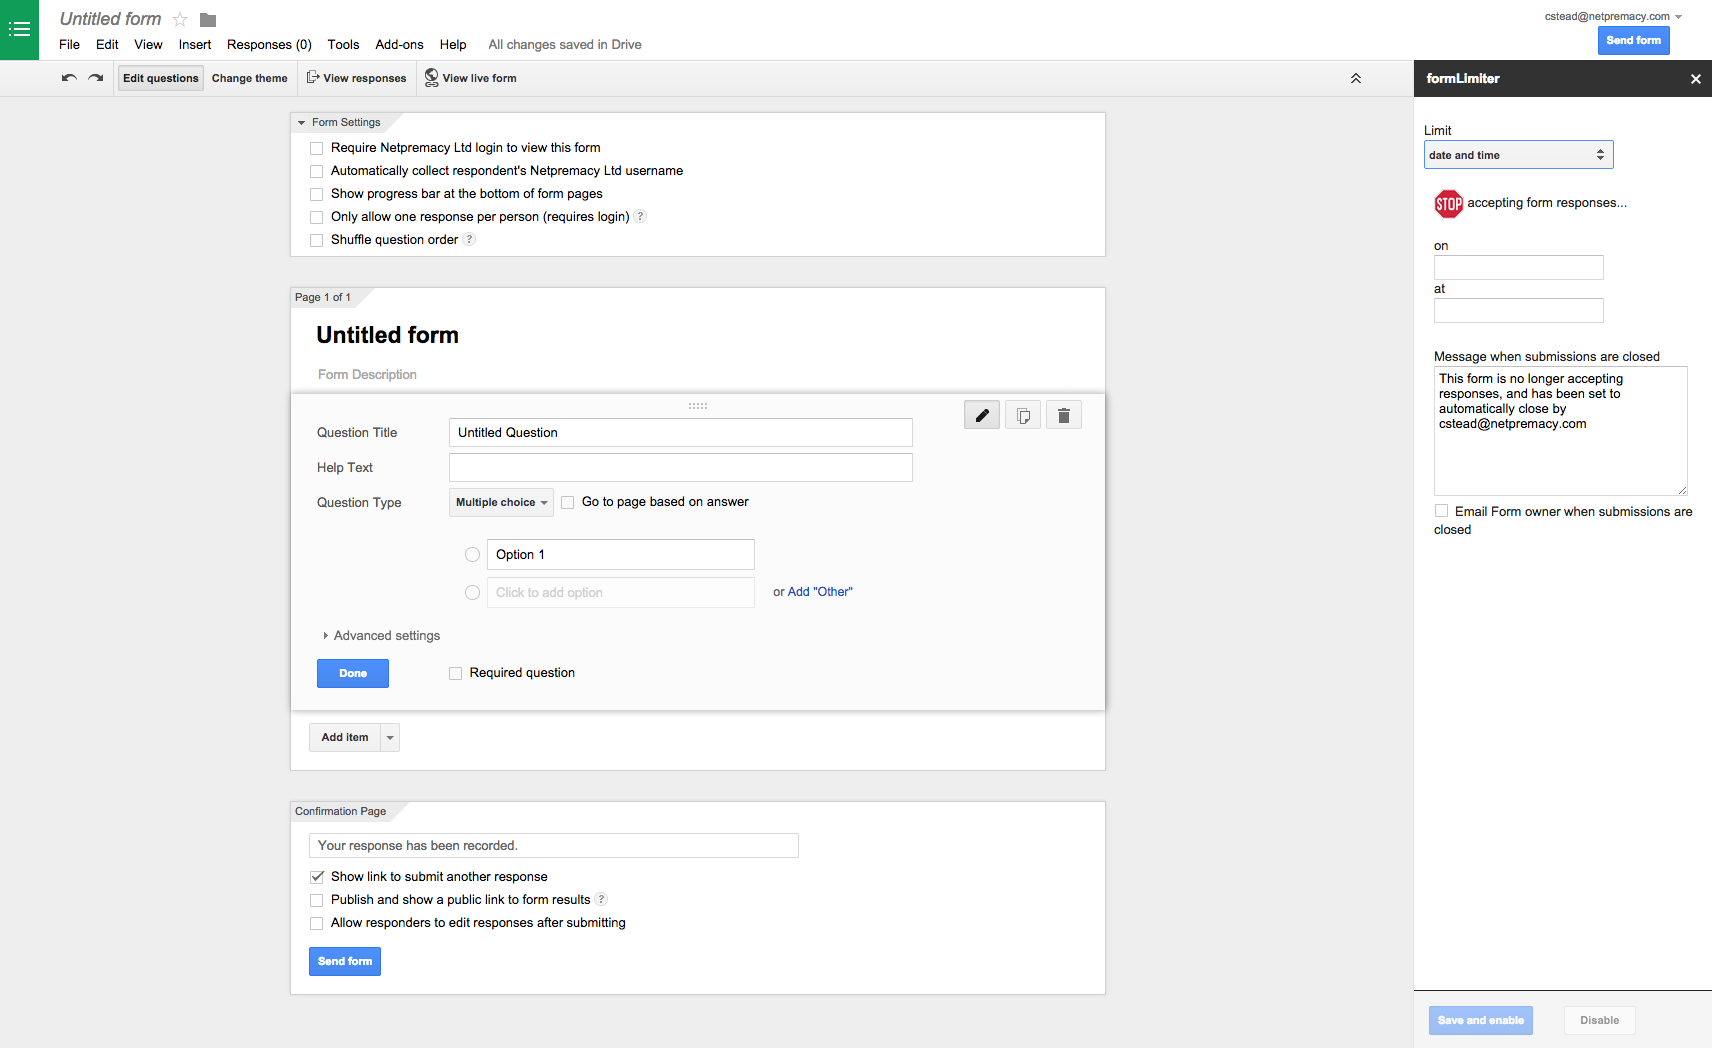 AppsCare | How to set time limits on Google Forms submissions ...